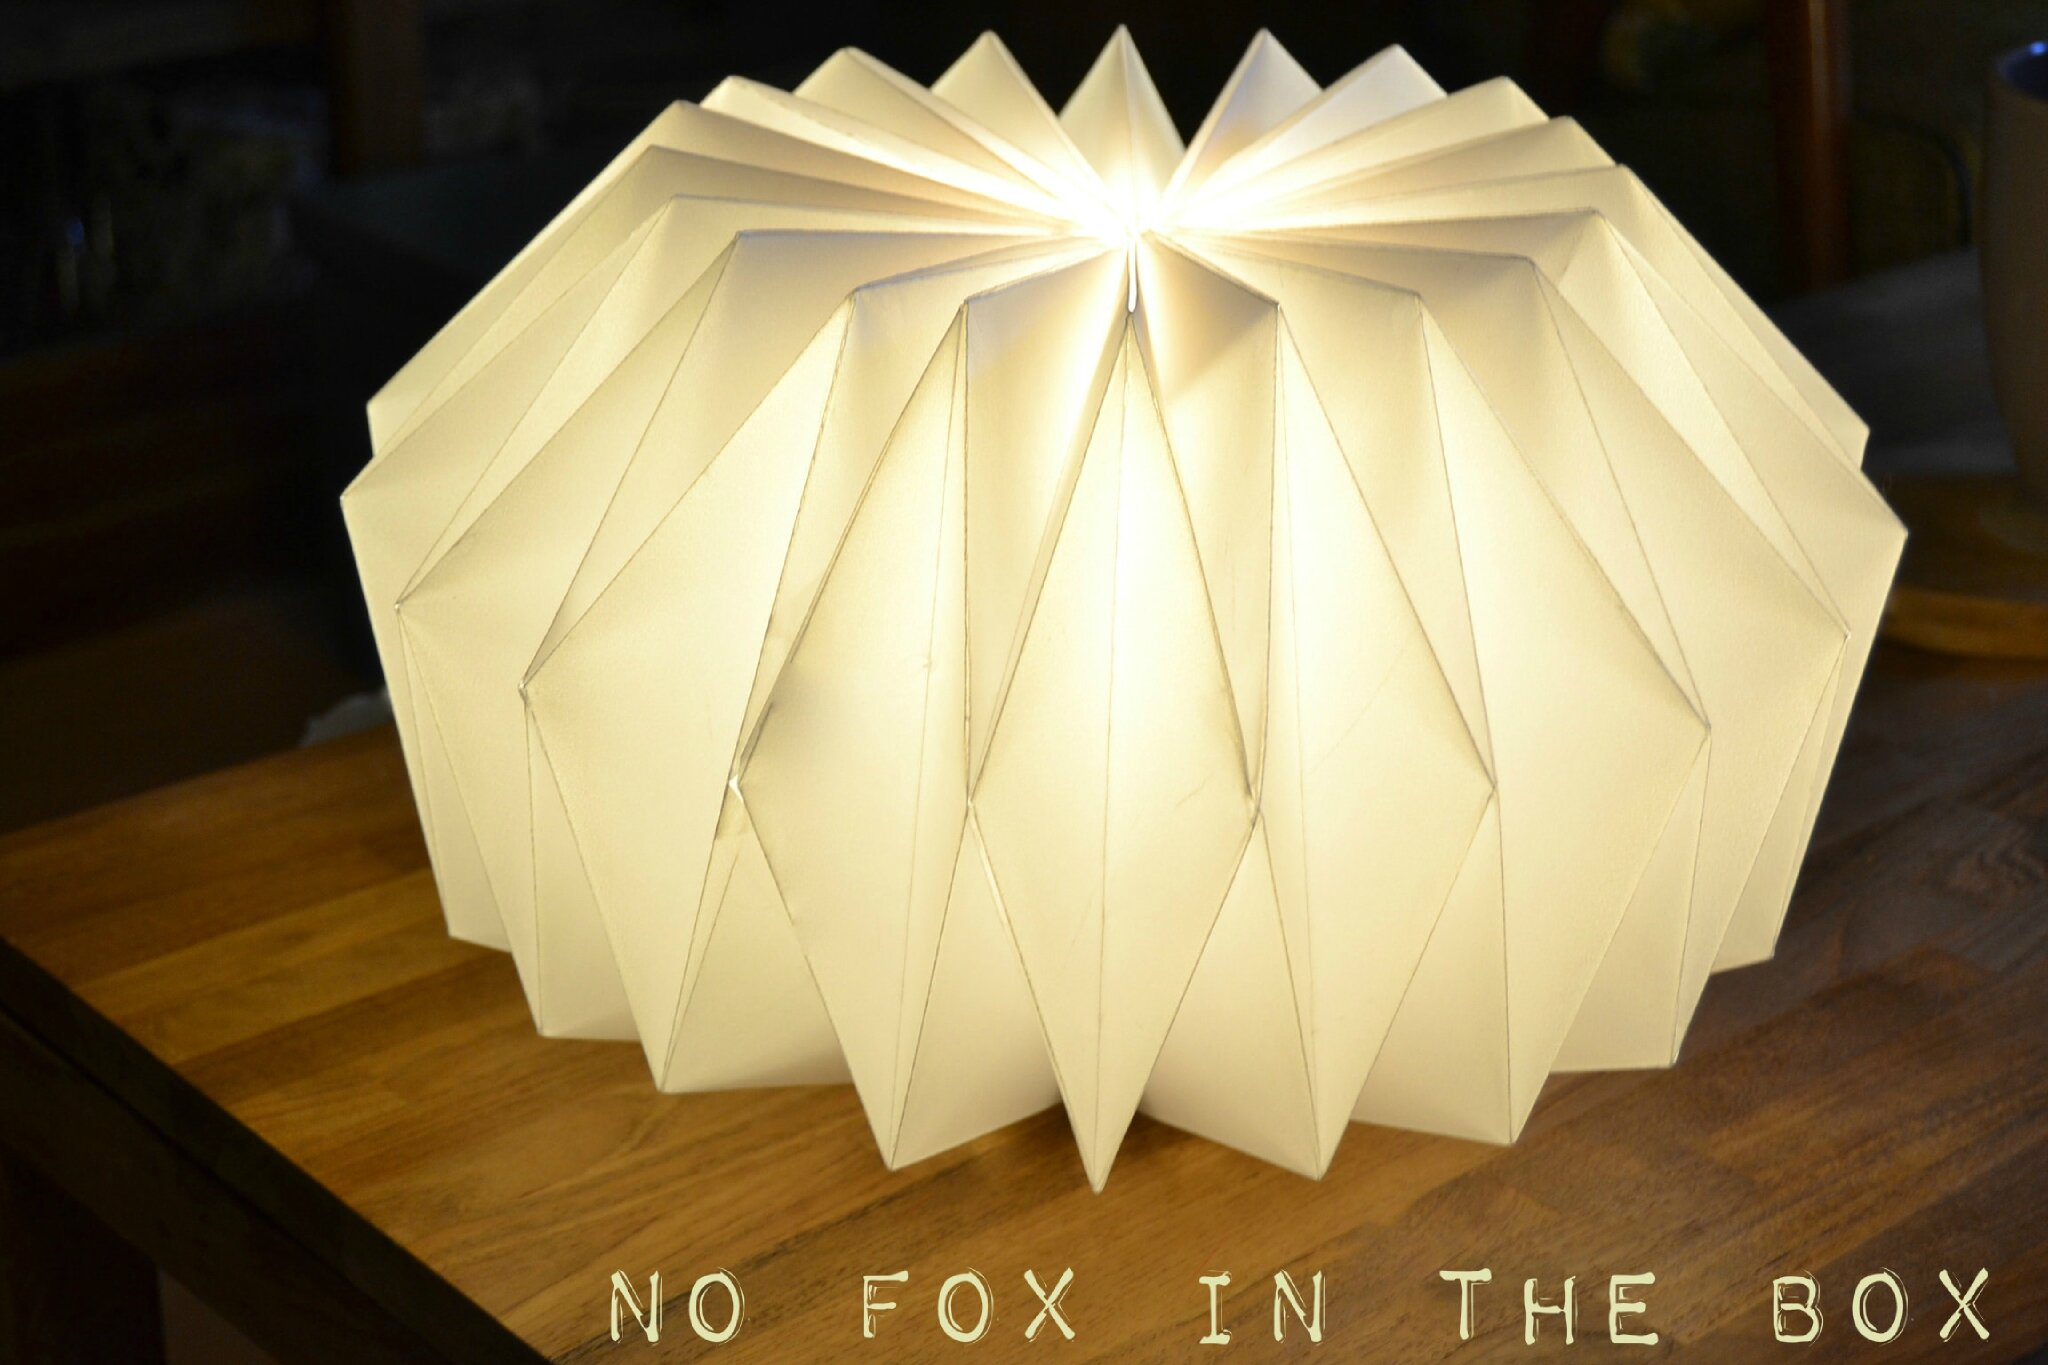 Et puisqu 39 on est dans les pliages et la lumi re no fox in the box - Lampe en papier origami ...